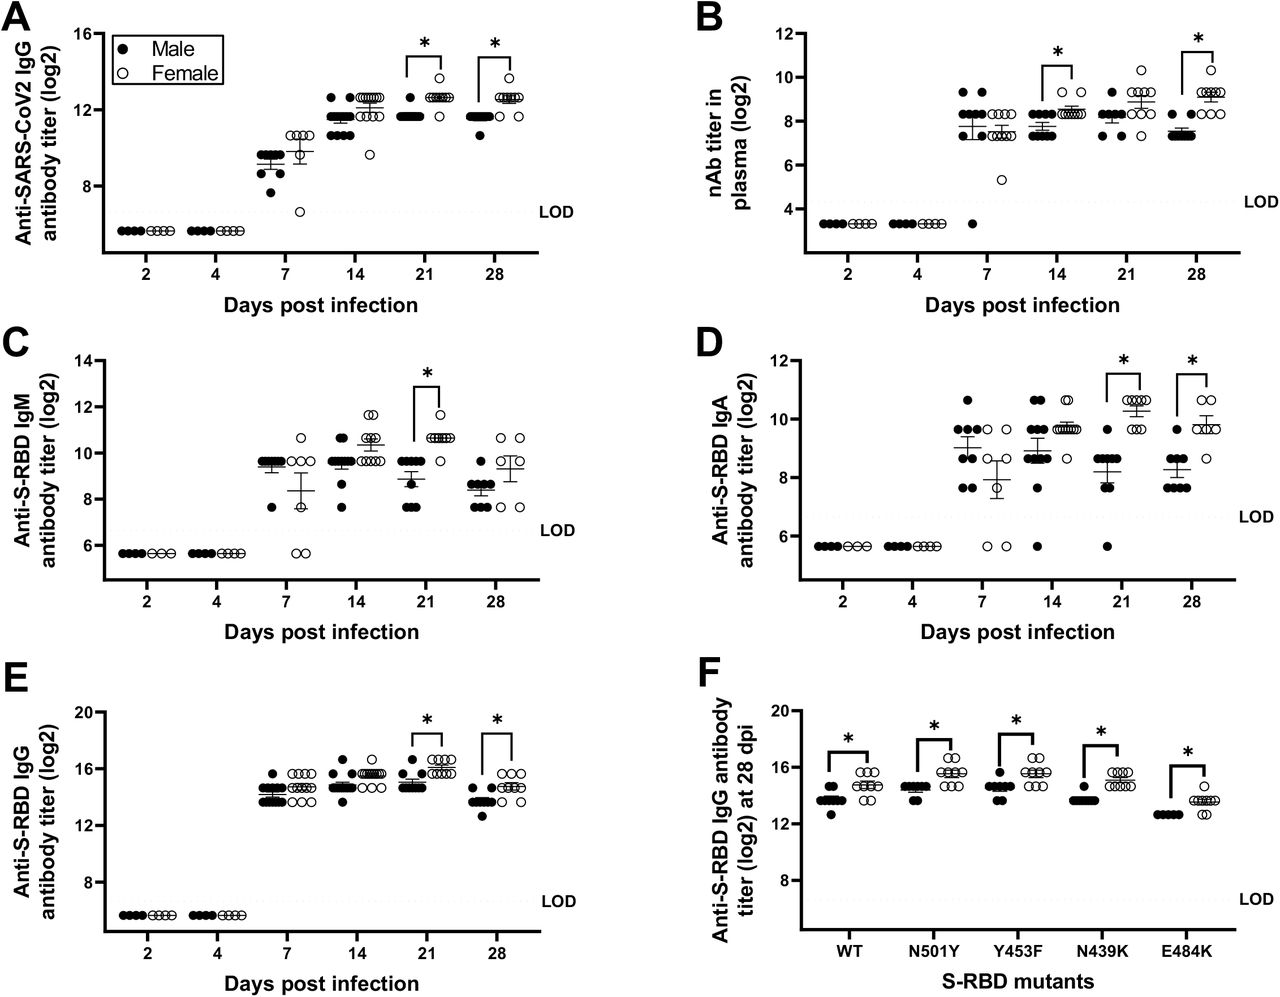 Antibody responses in the plasma of SARS-CoV-2 infected female hamsters were greater than males. Plasma samples were collected at different dpi and IgG antibody responses against whole inactivated SARS-CoV-2 virions (A); virus neutralizing antibody responses (B); and S-RBD-specific IgM (C), IgA (D), and IgG (E) antibodies were determined. Likewise, cross-reactive IgG antibodies against mutant S-RBDs (viz. N501Y, Y453F, N439K, and E484K) were evaluated in plasma at 28 dpi (F). Considering similar antibody responses at 6 and 7 dpi, values were presented together as 7 dpi. Data represent mean ± standard error of the mean from two independent experiments (n = 4-14/group/sex) and significant differences between groups are denoted by asterisks (*p